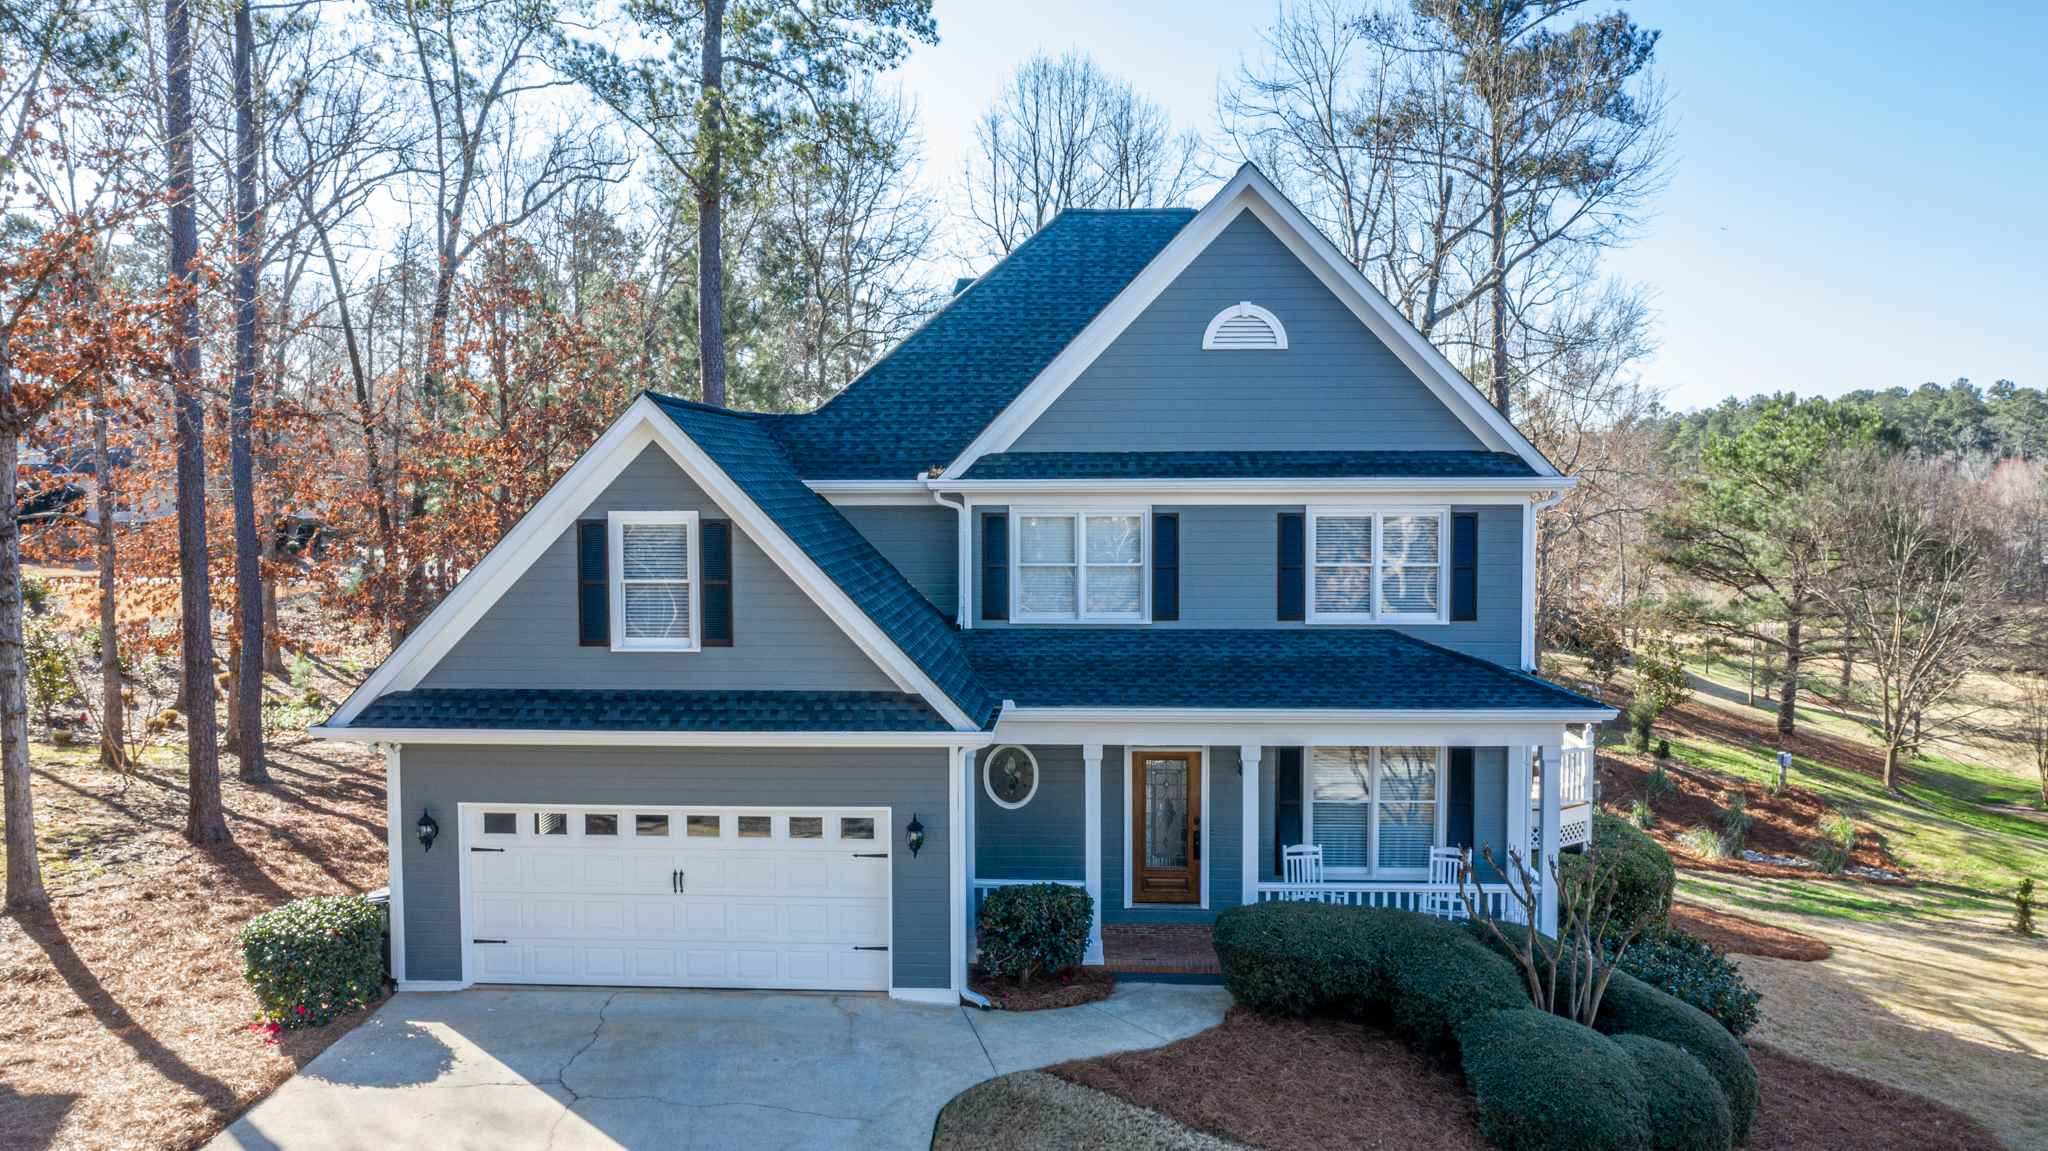 One of Lake Oconee Harbor Club 3 Bedroom Homes for Sale at 1050 BILLY MANTLE LANE